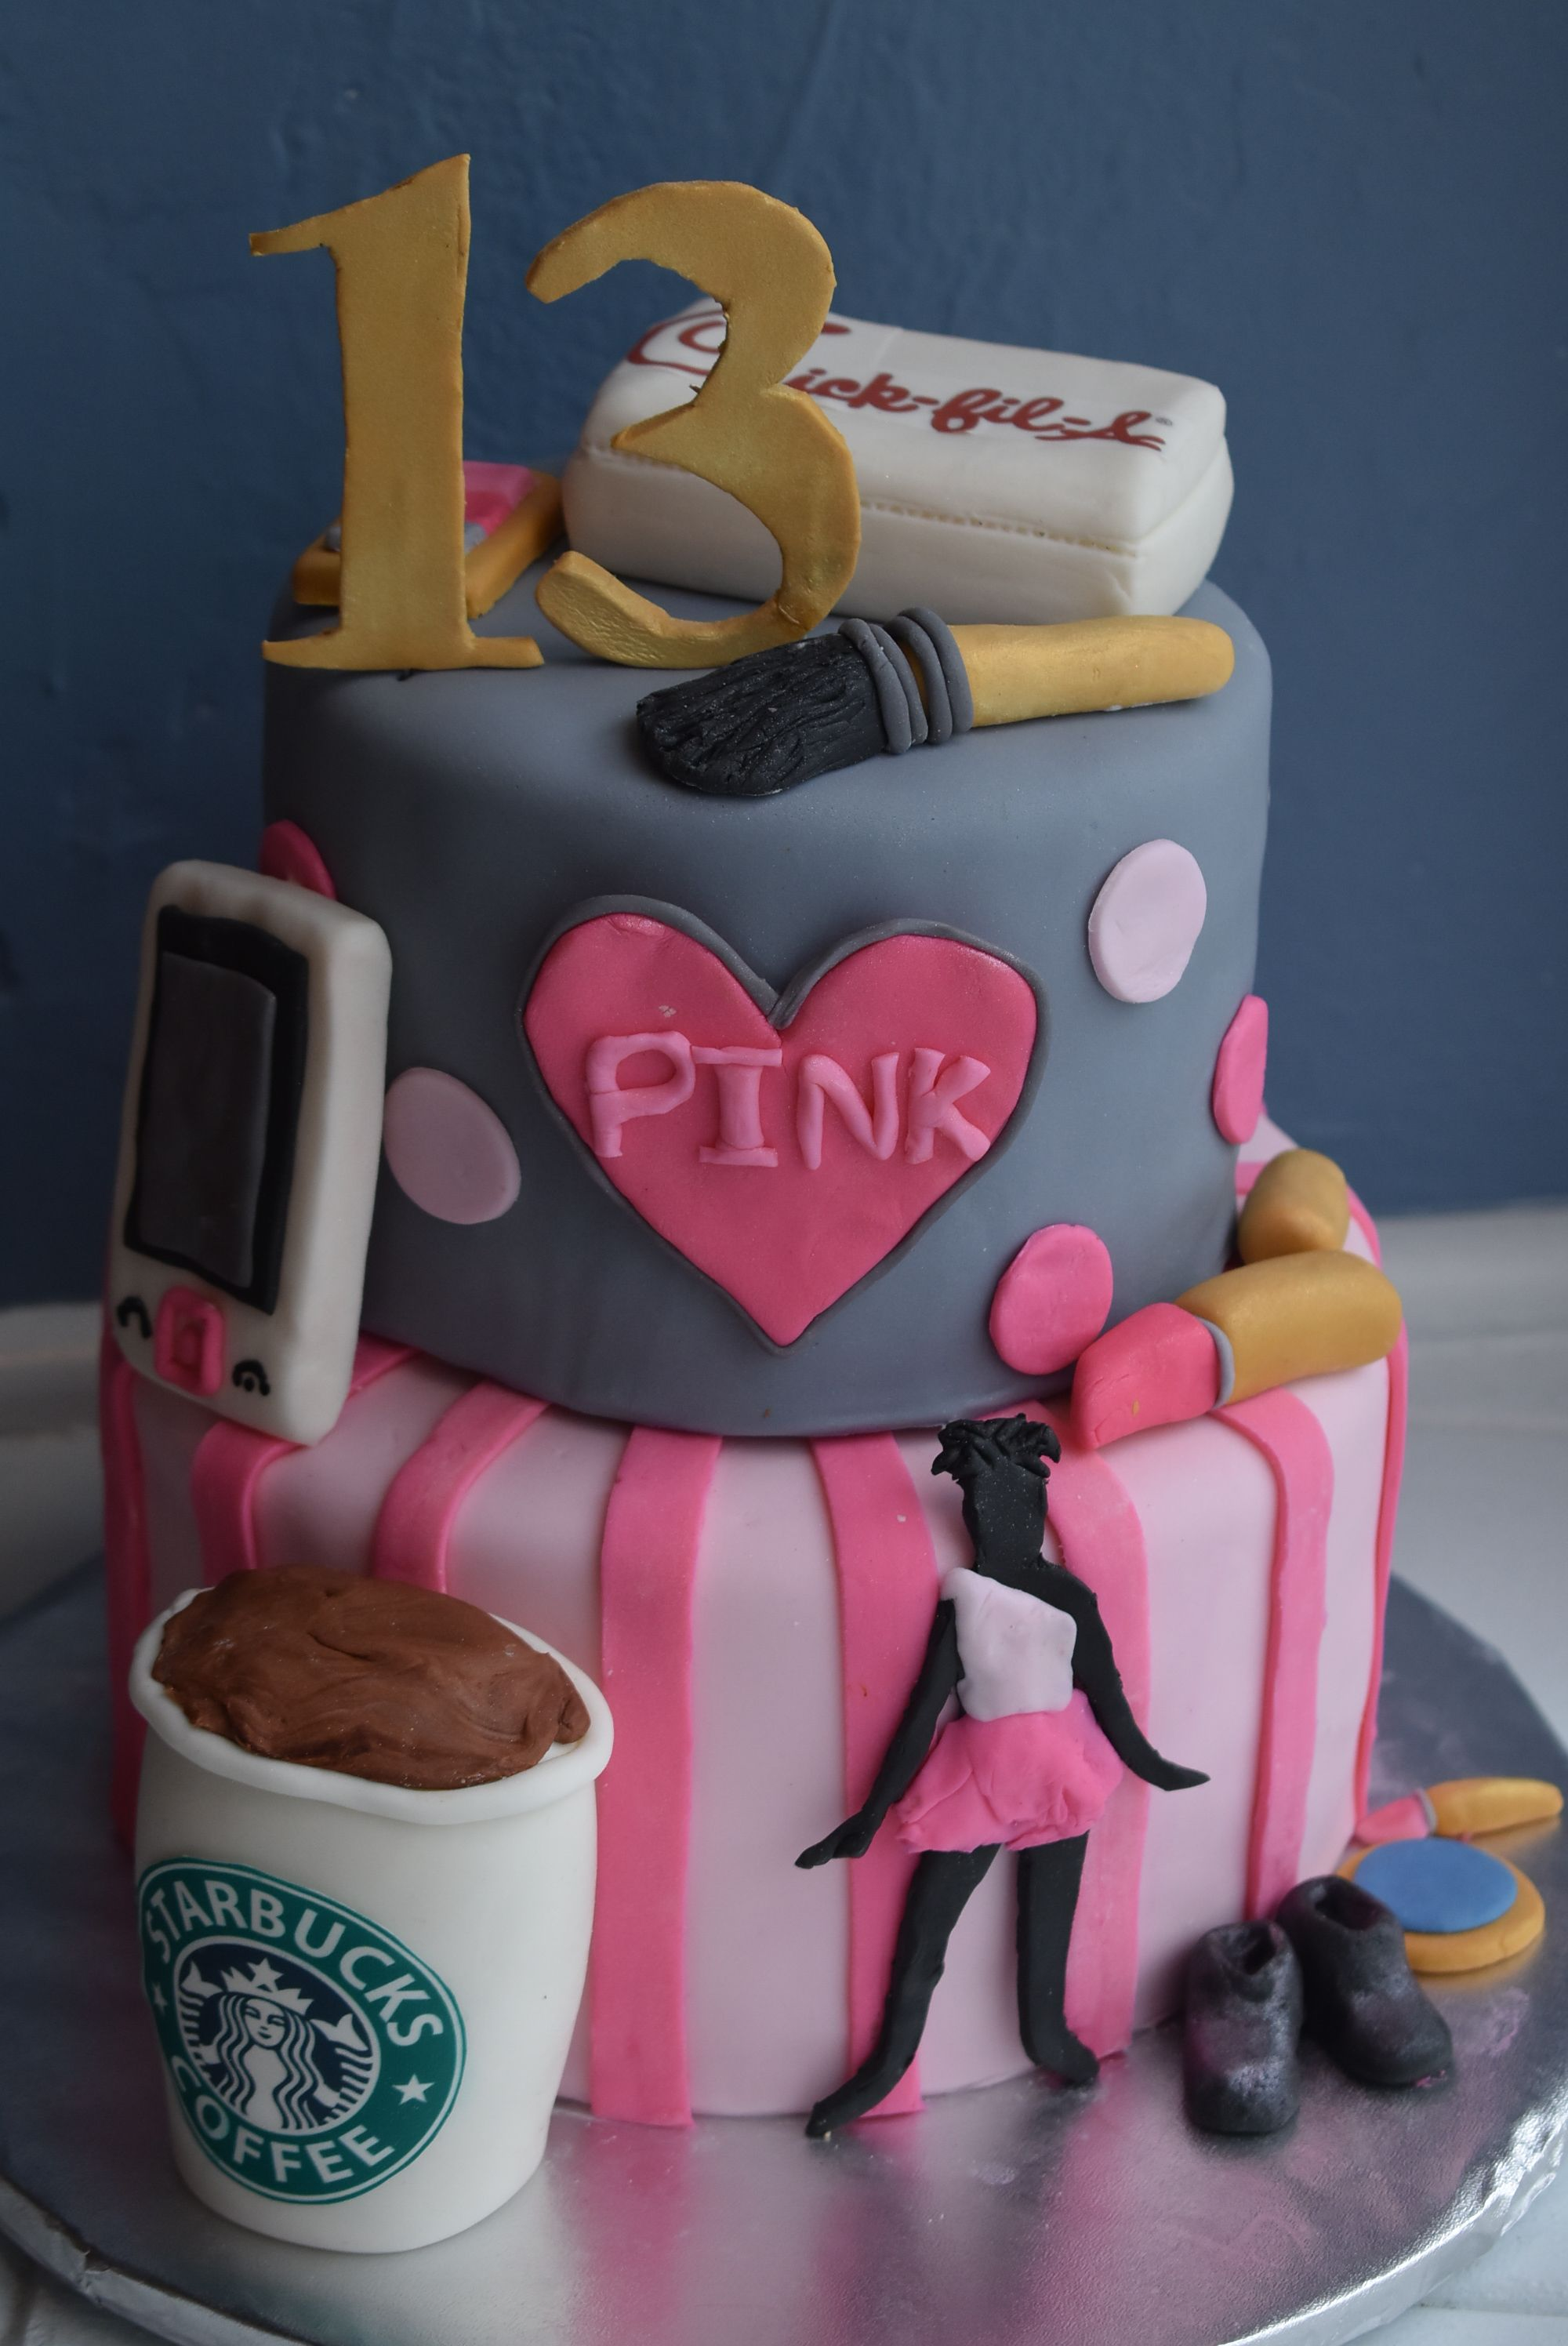 Incredible 13 Birthday Cake With Starbucks Chickfila Pink Dance And Makeup Personalised Birthday Cards Veneteletsinfo